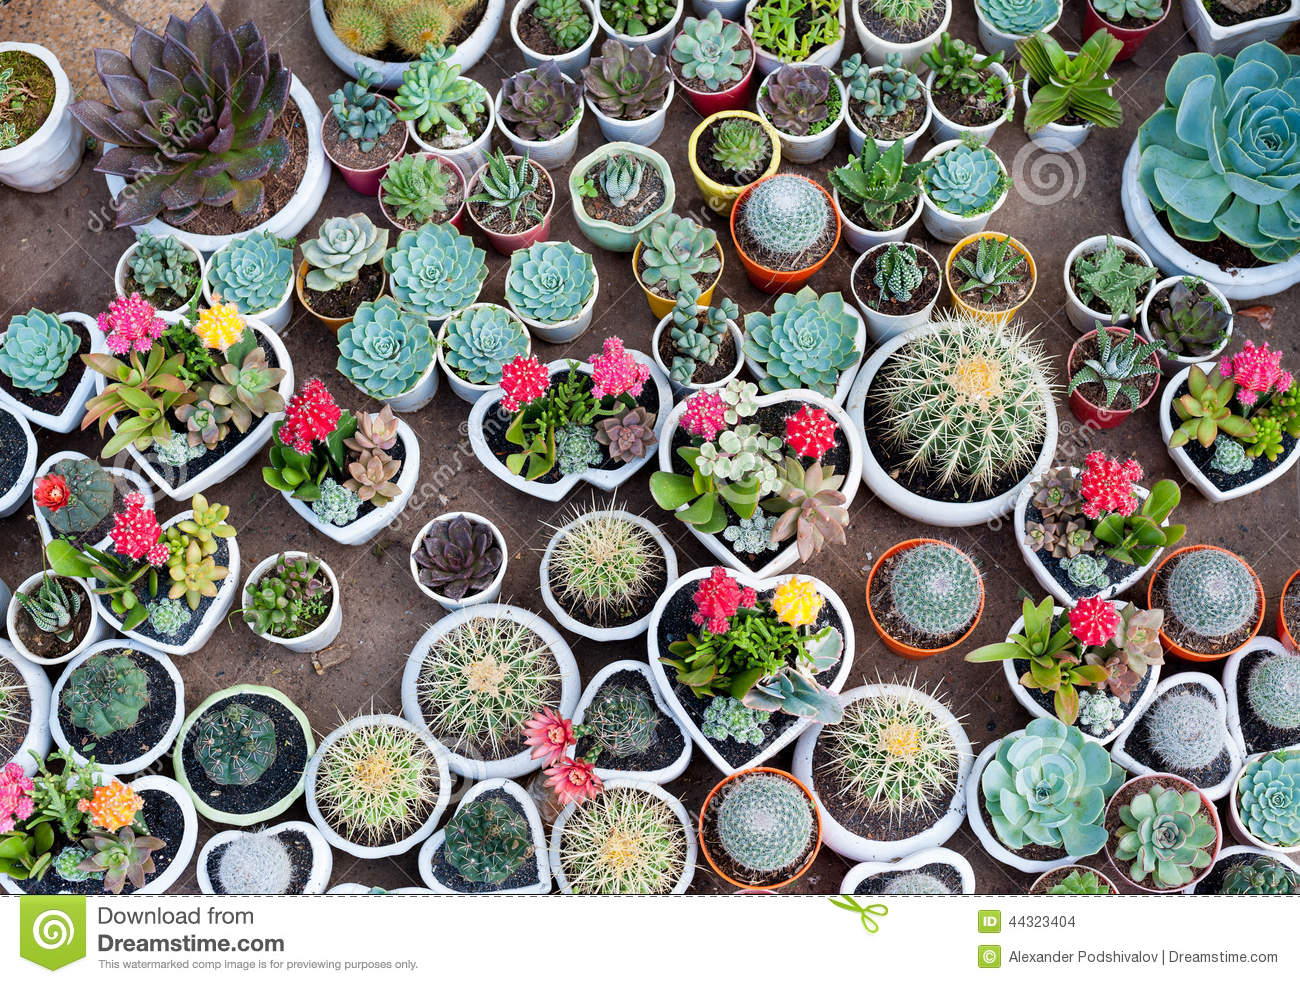 Cactus Pots For Sale Many Cacti In Pots Stock Photo Image Of Succulent Flower